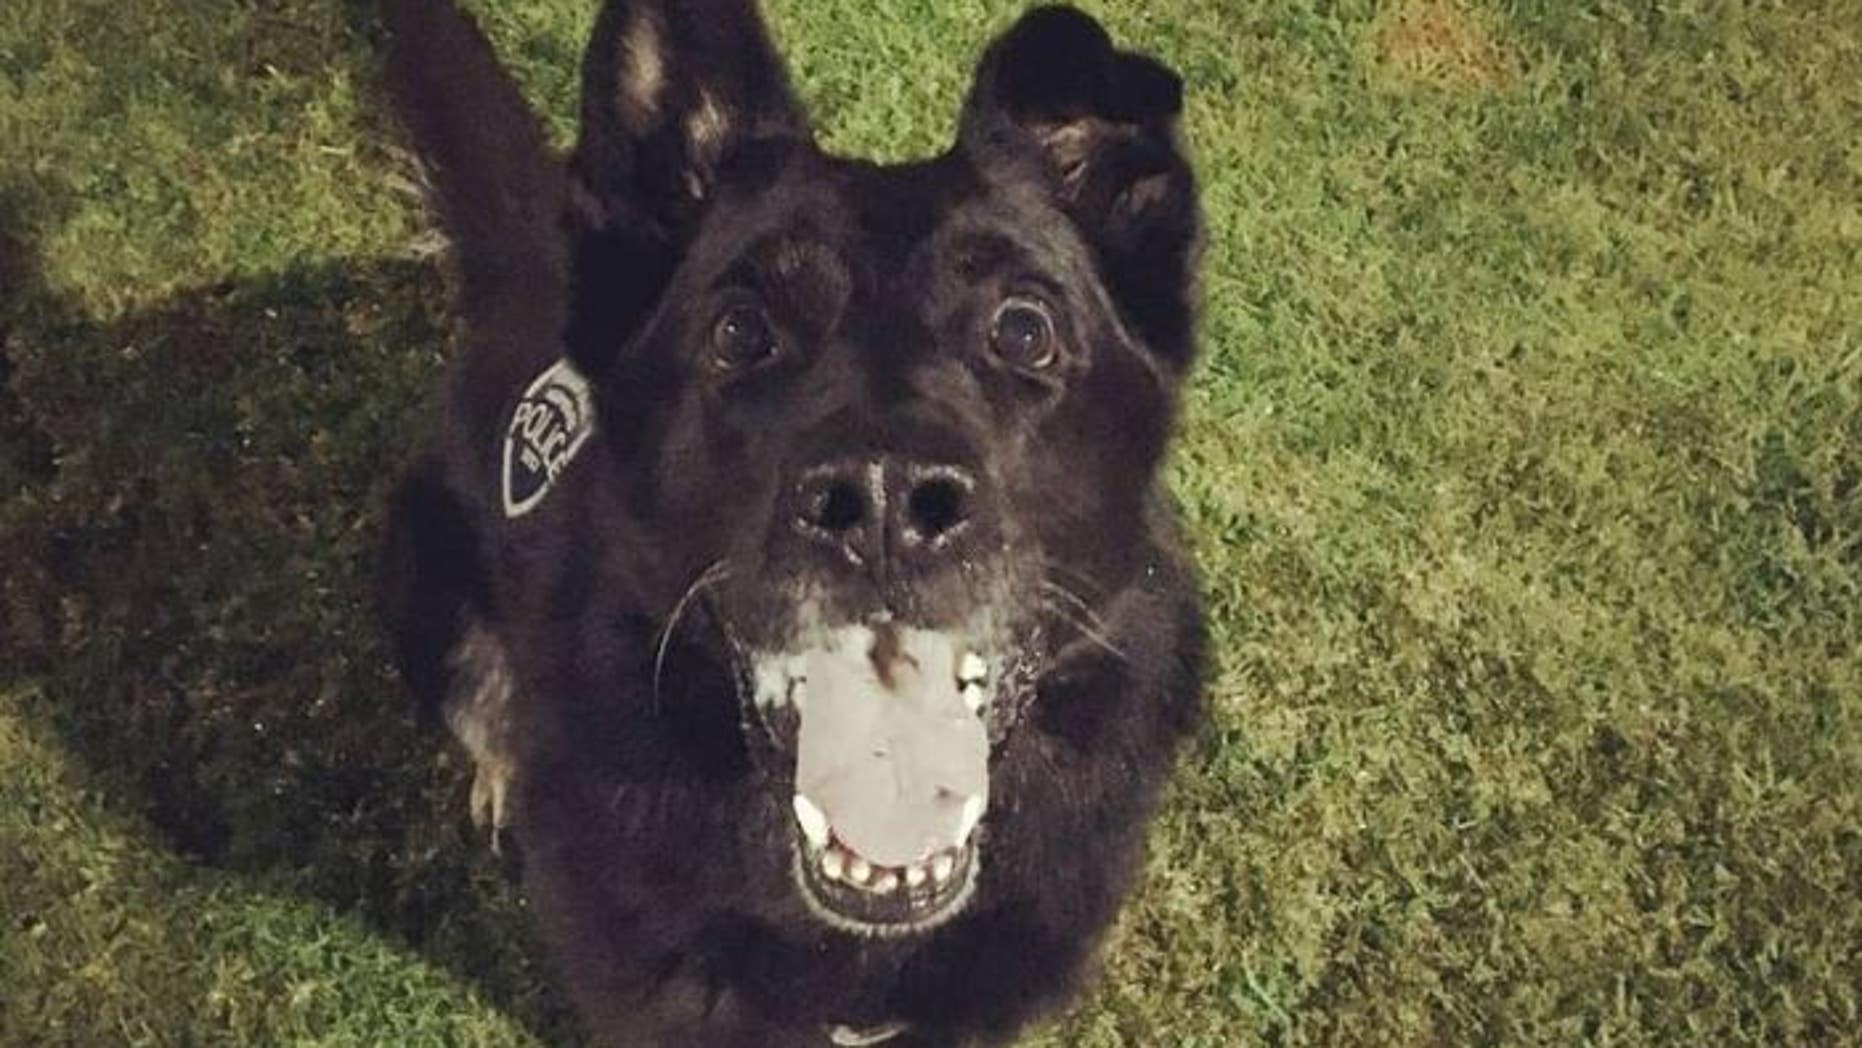 Perro, a K9 dog with the Fountain Valley Police Department, was punched while helping officers arrest a suspect.